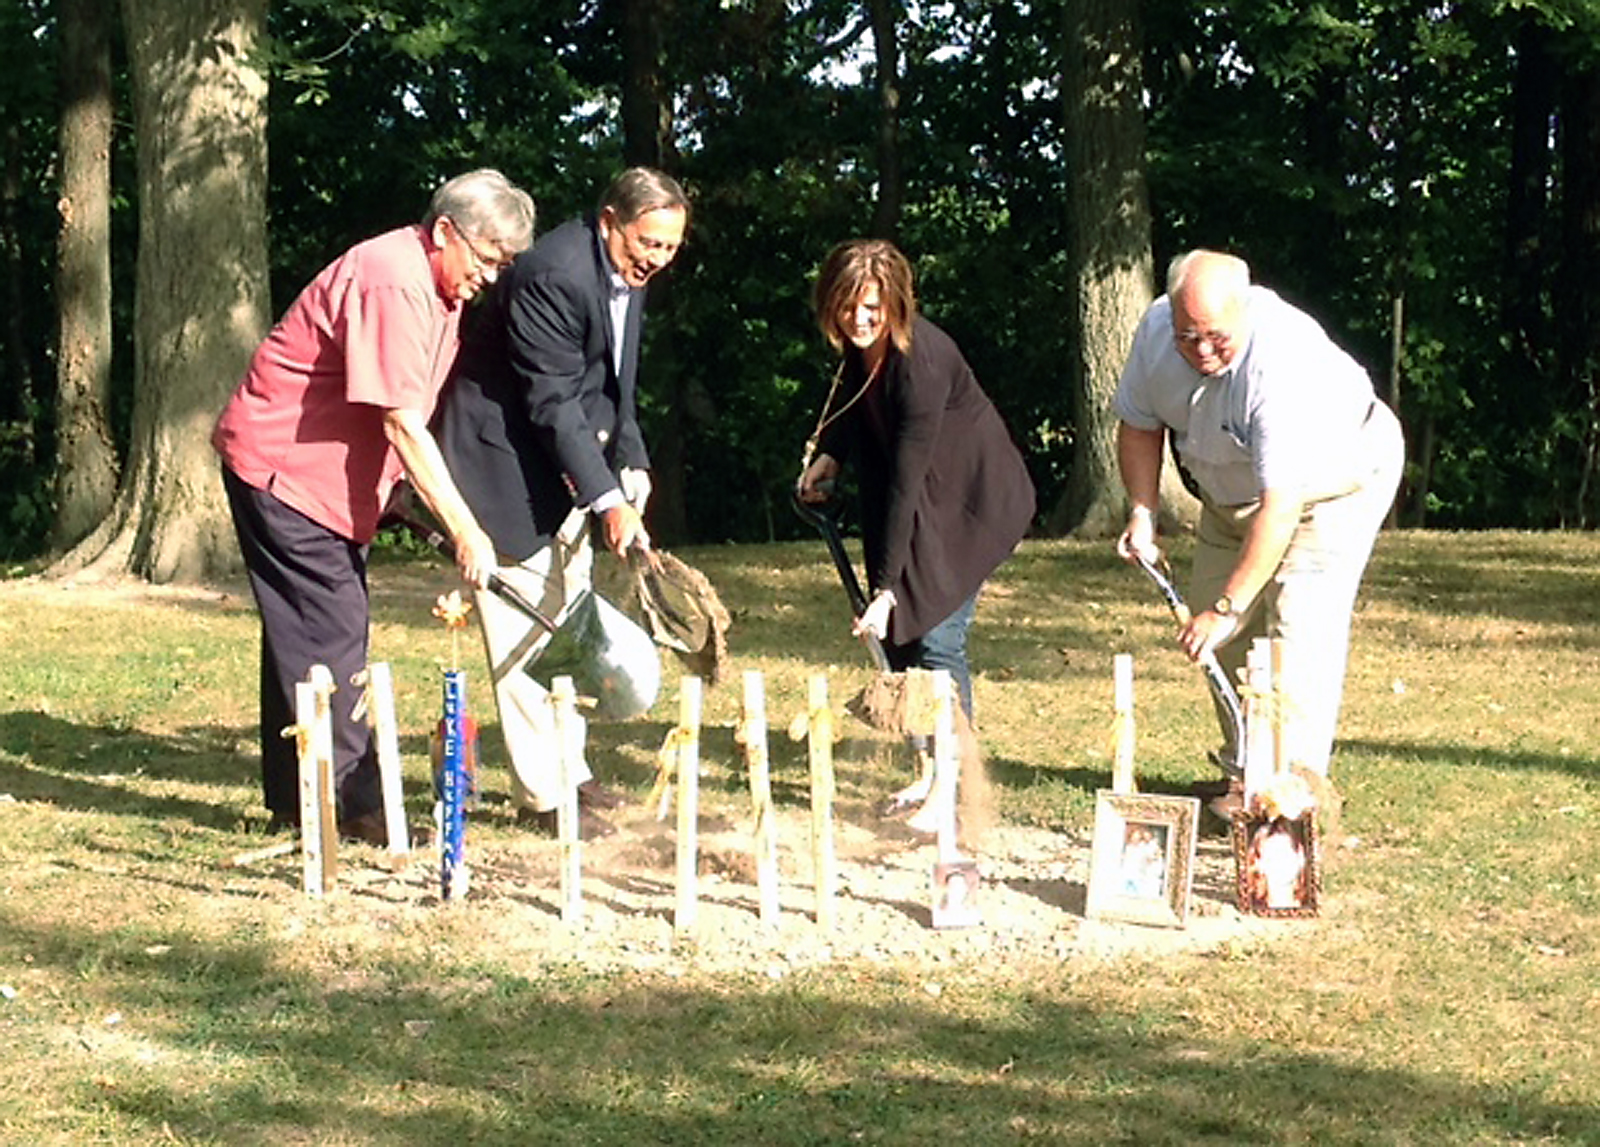 Parks Director Don Seal, Mayor John Ditslear, Parks Board President Ann Minnich and Kirk Forbes break ground for the Angel of Hope memorial in Forest Park. (Submitted photo)